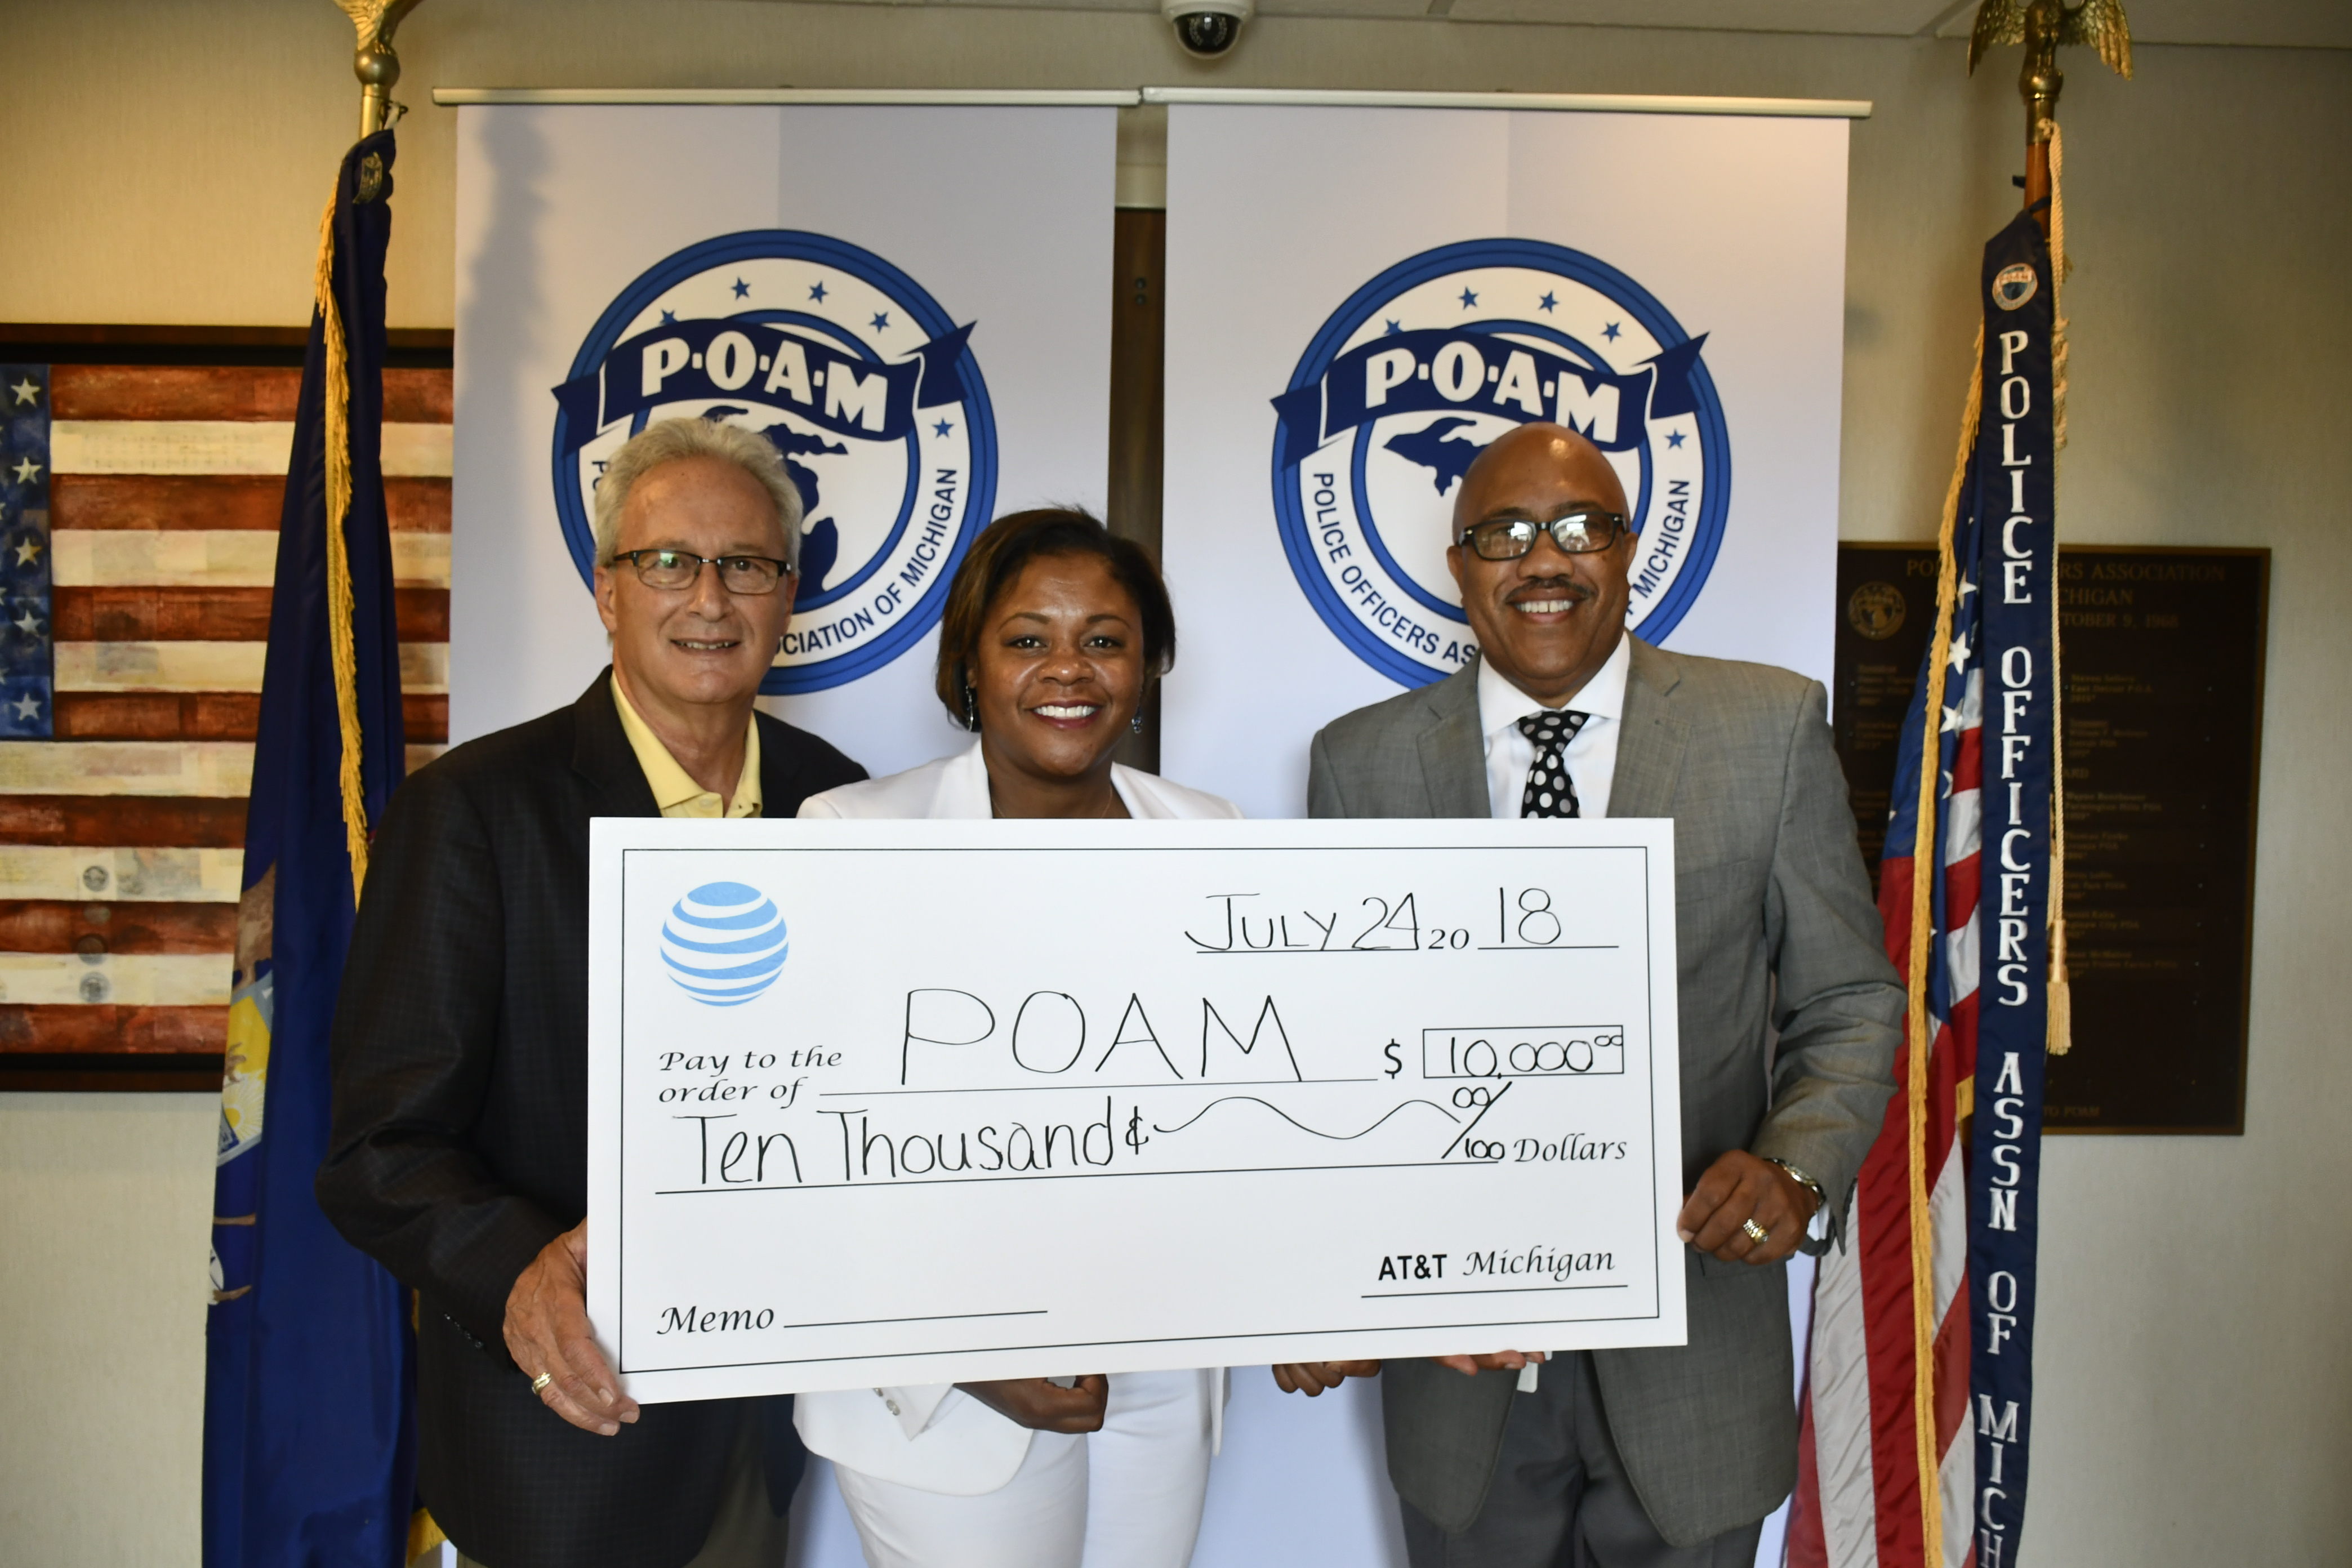 Law Enforcement Grant from POAM, AT&T Michigan